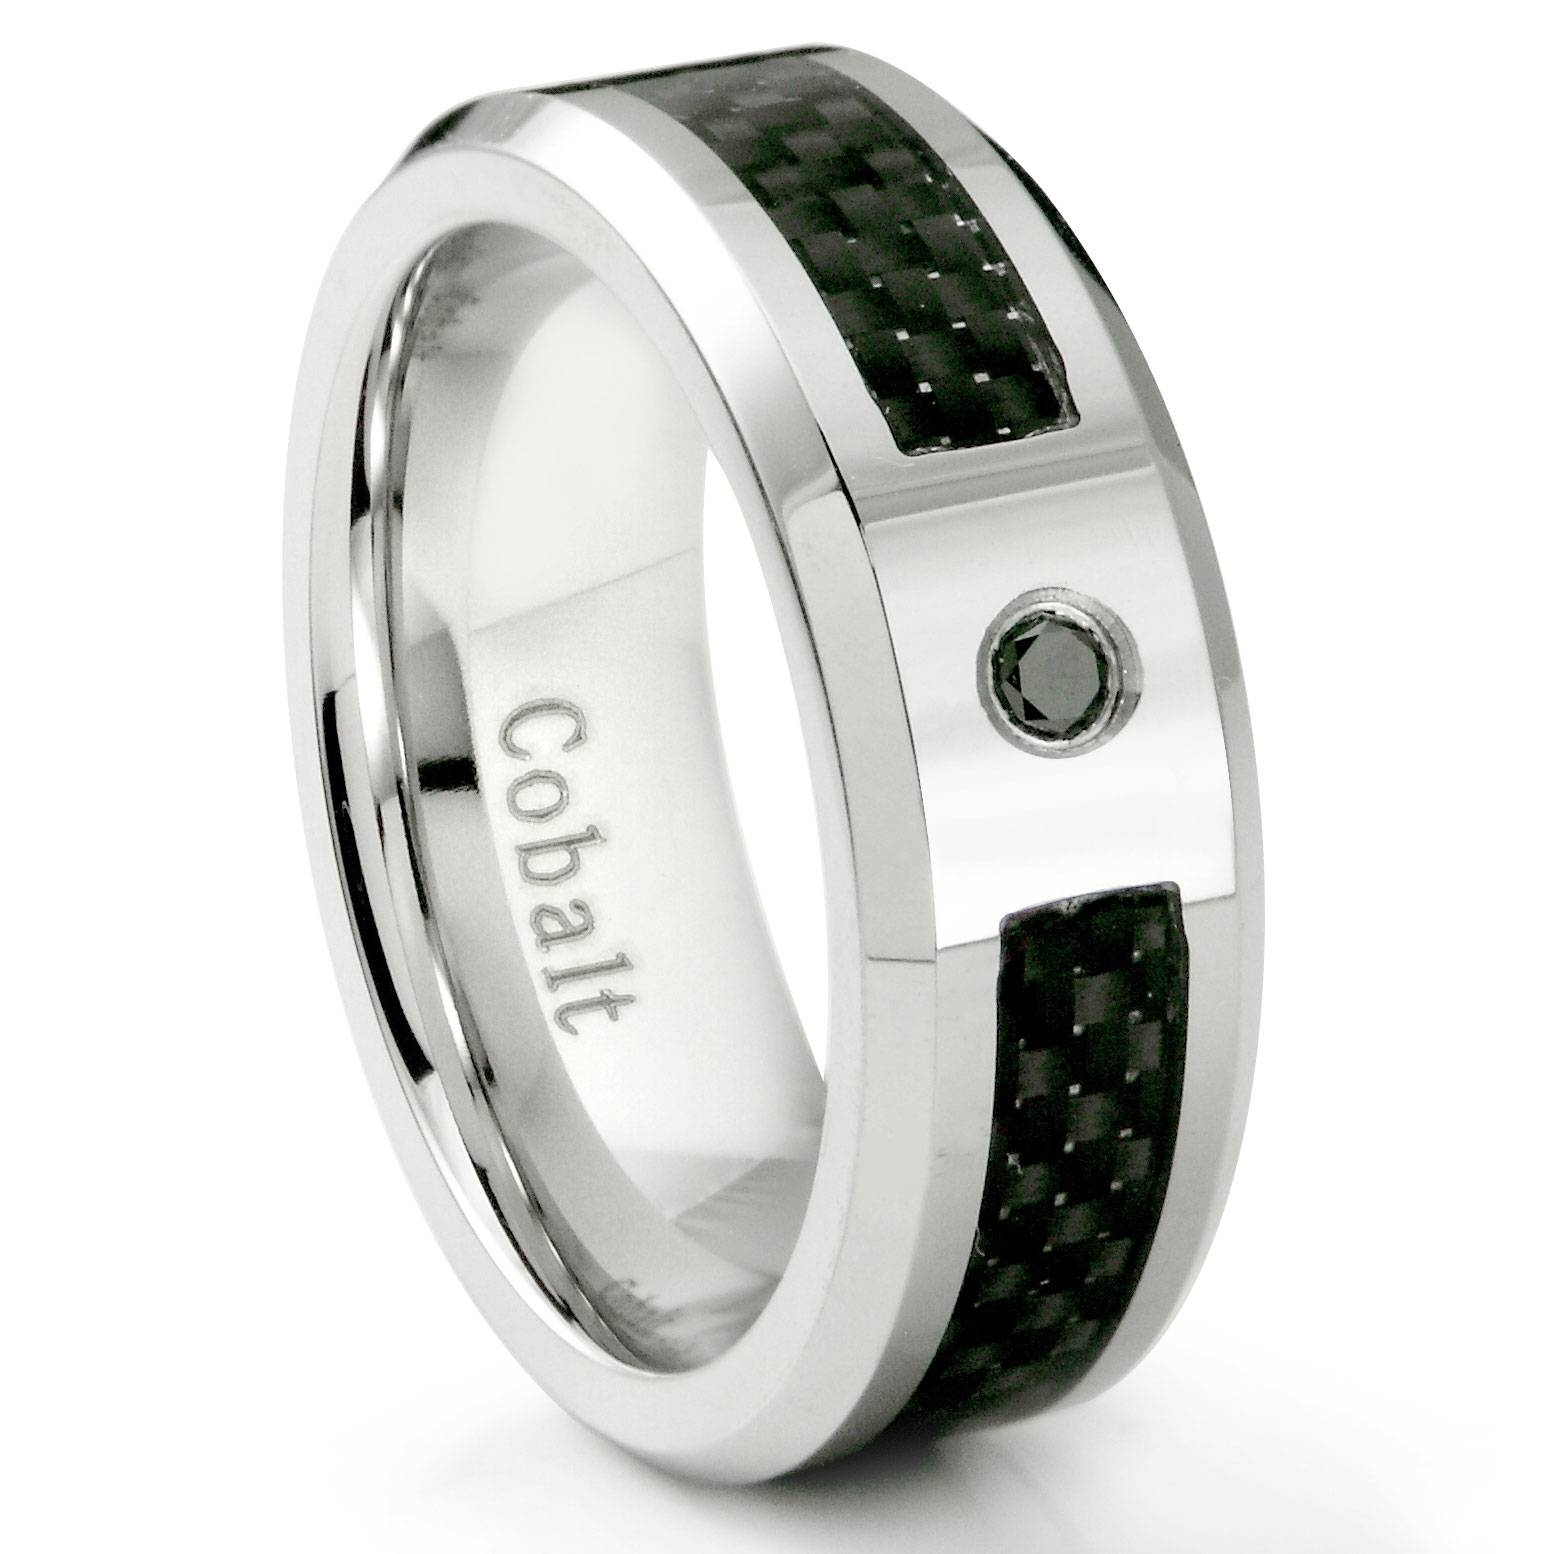 Cobalt Chrome 8Mm Black Diamond & Black Carbon Fiber Inlay Wedding Intended For Carbon Wedding Bands (View 8 of 15)